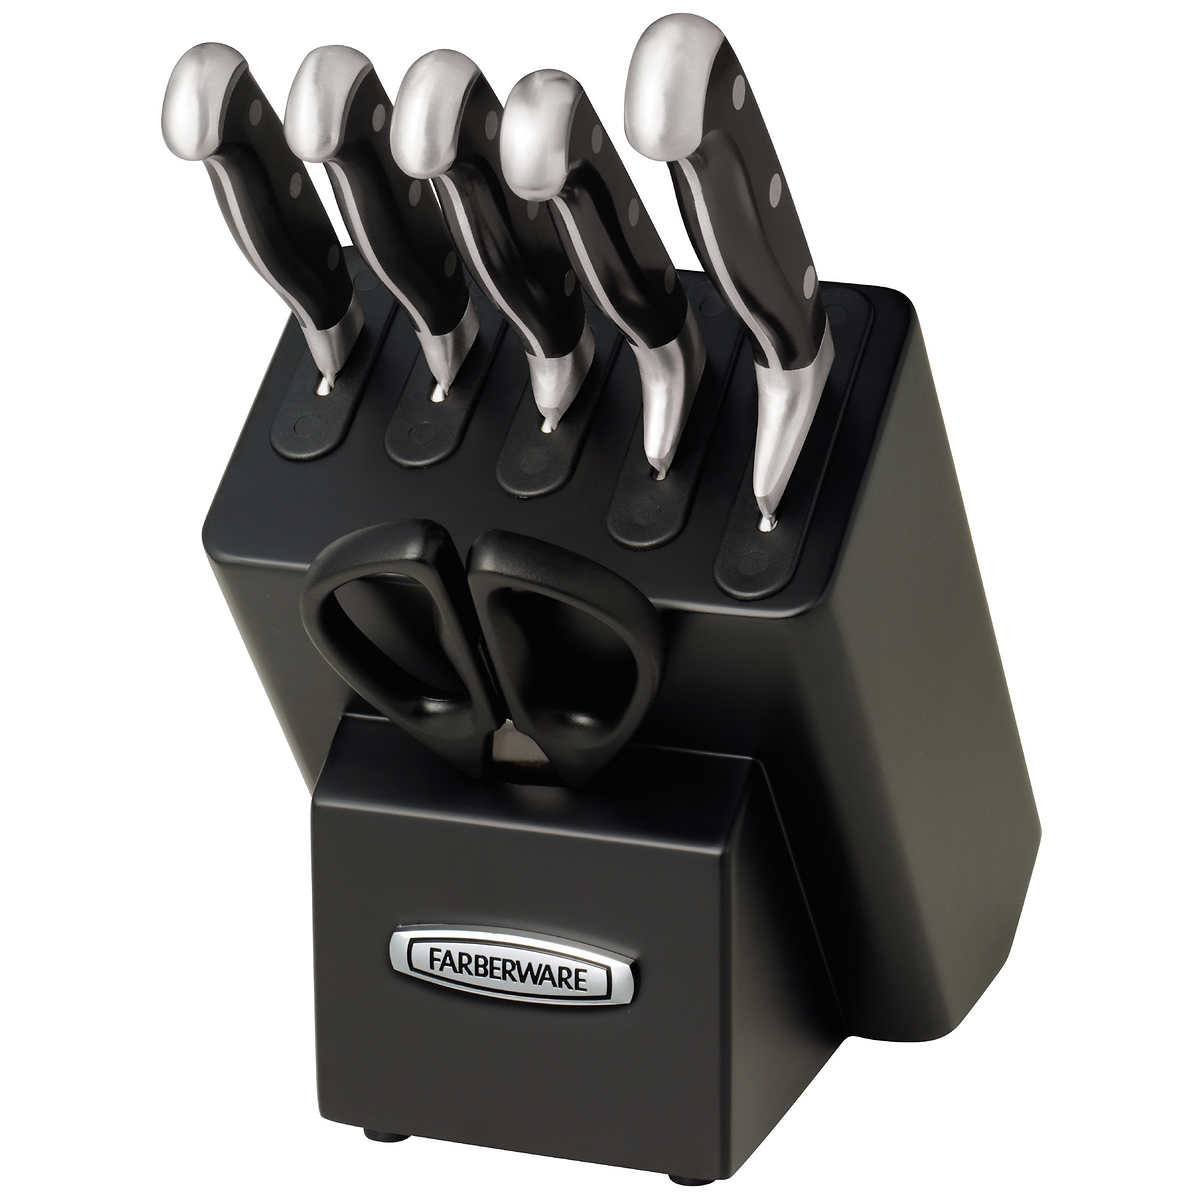 farberware 7 piece self sharpening japanese stainless steel knife block set ebay. Black Bedroom Furniture Sets. Home Design Ideas